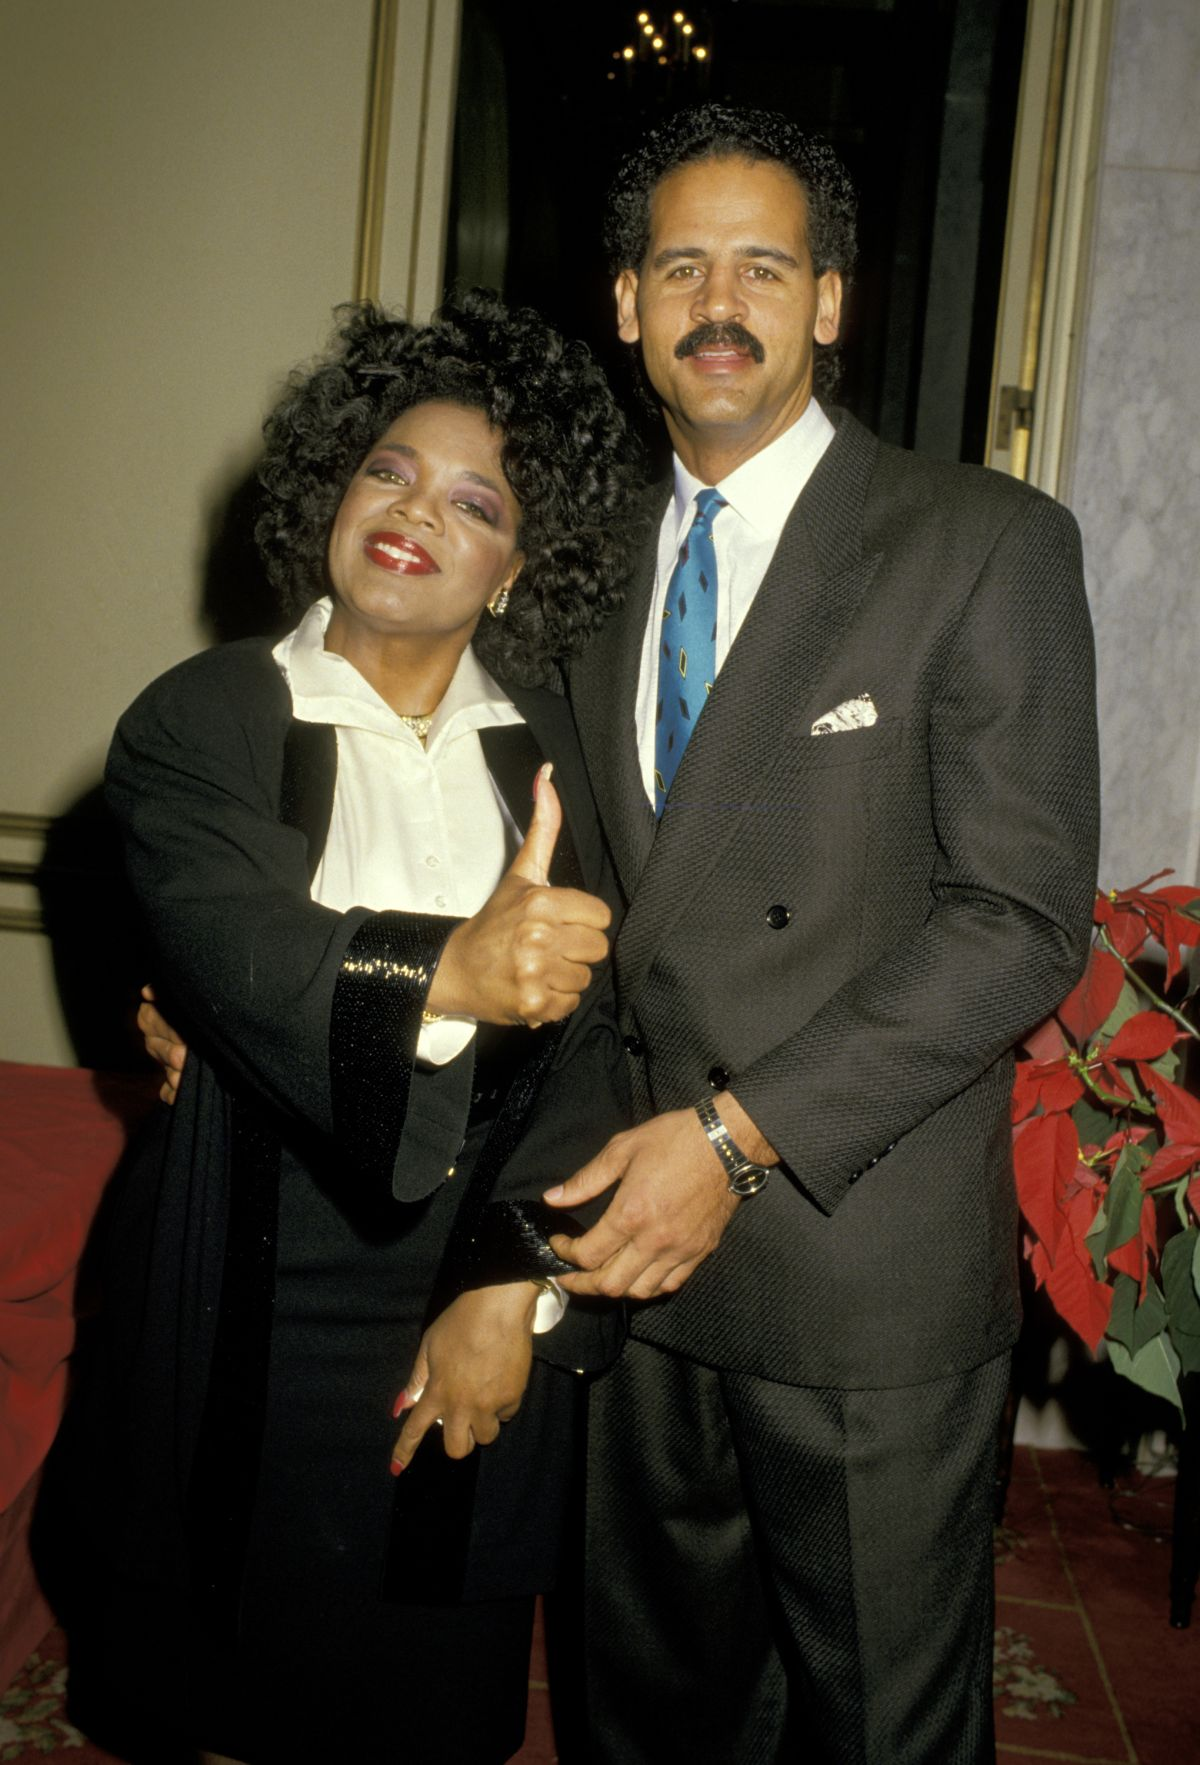 Oprah Winfrey and Stedman Graham at White House. Due to her past relations Oprah Winfrey had some issues trusting Stedman Graham.